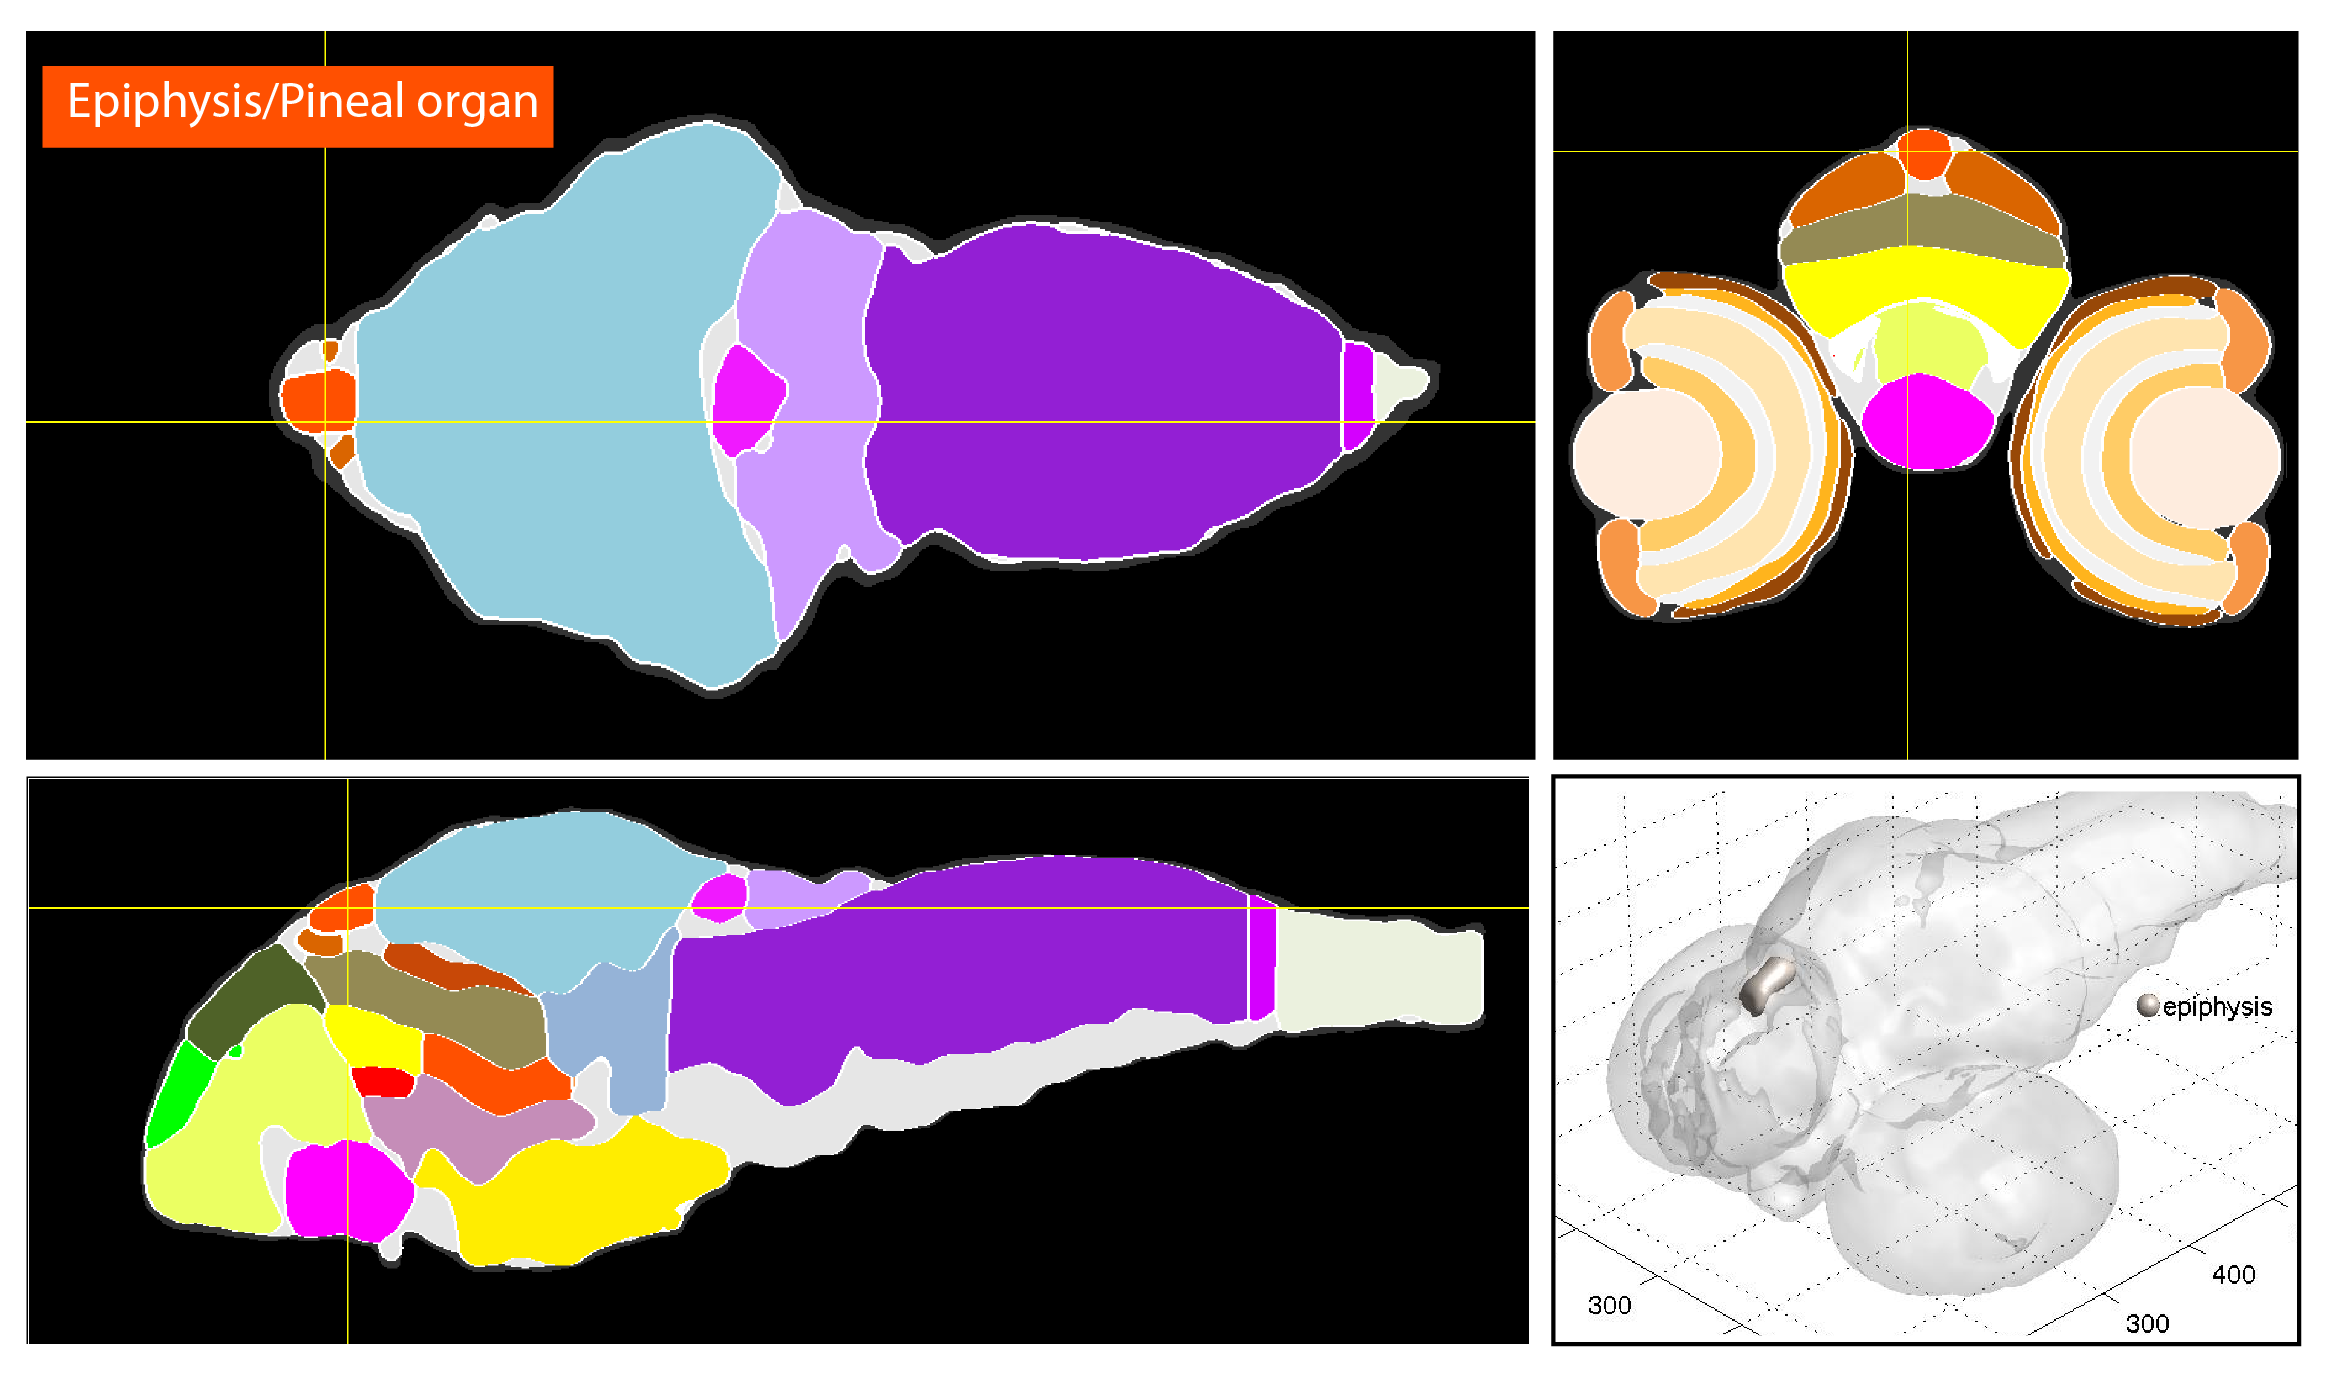 Anatomical segmentation of 3 day old zebrafish larval brain by Thomas Müller, Olaf Ronneberger, Wolfgang Driever and colleagues. For details see Ronneberger et al., Nat. Meth. 2012 and  http://vibez.informatik.uni-freiburg.de